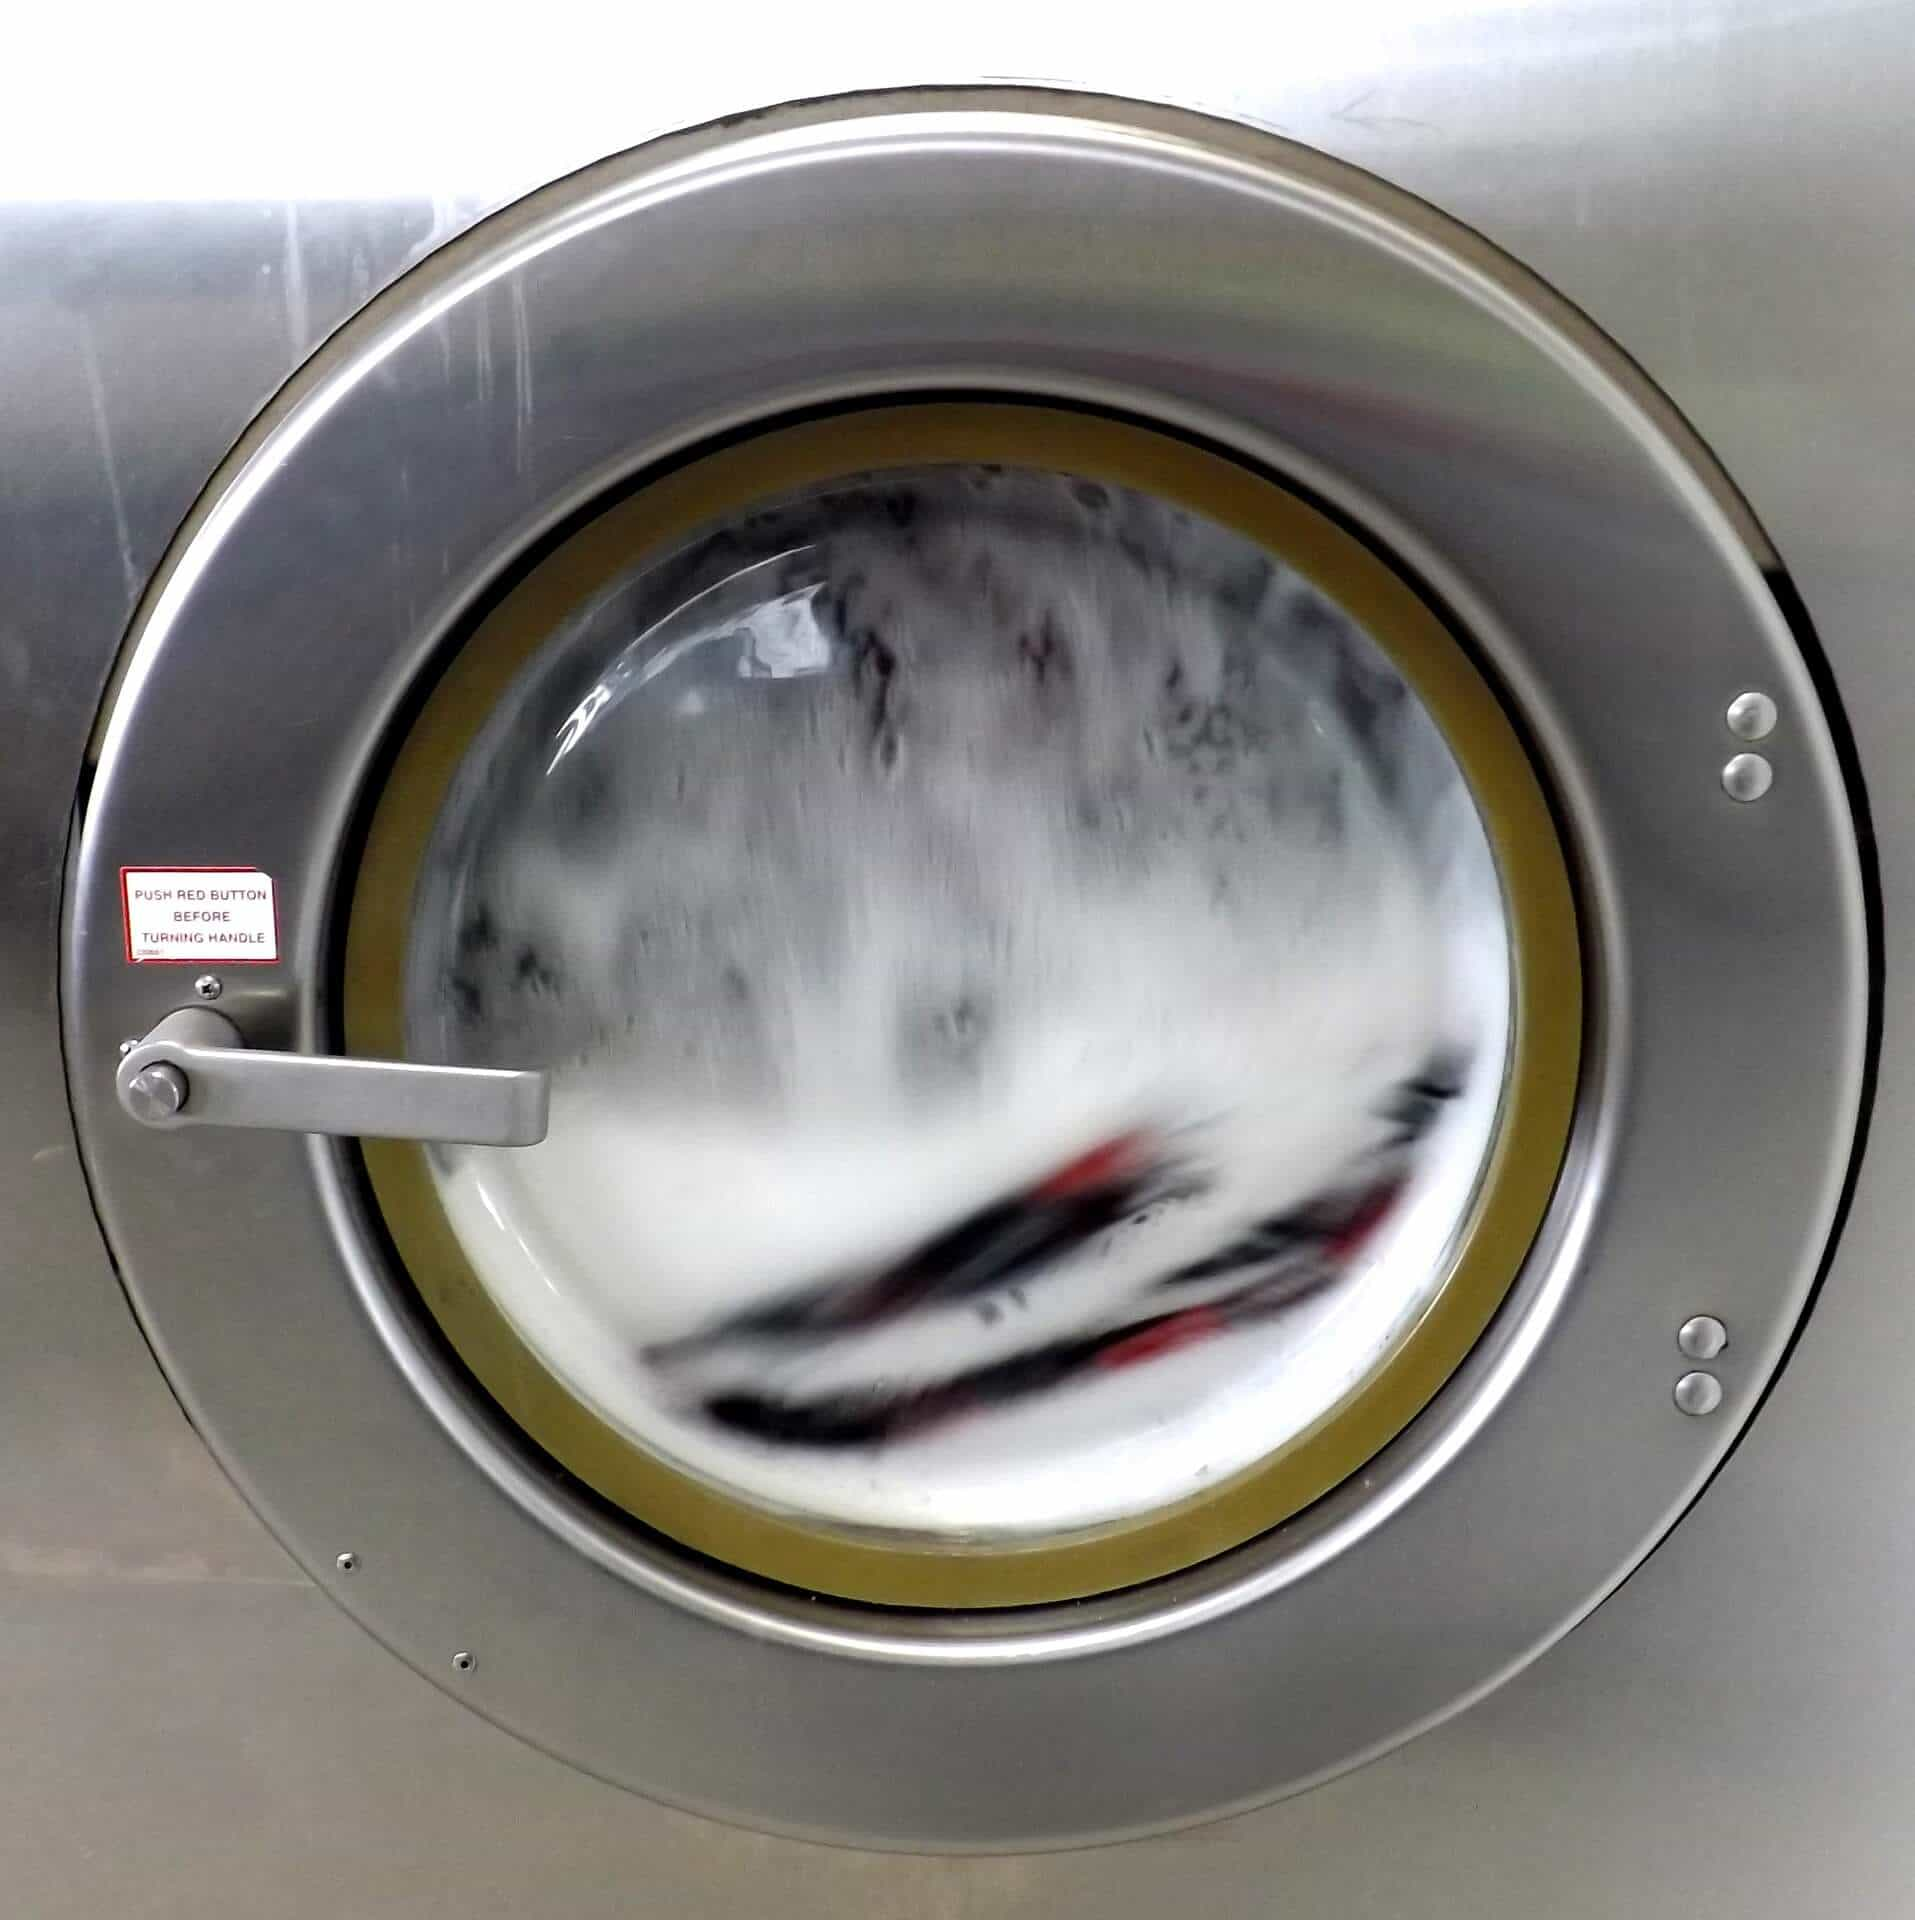 Washing Machine washes clothes